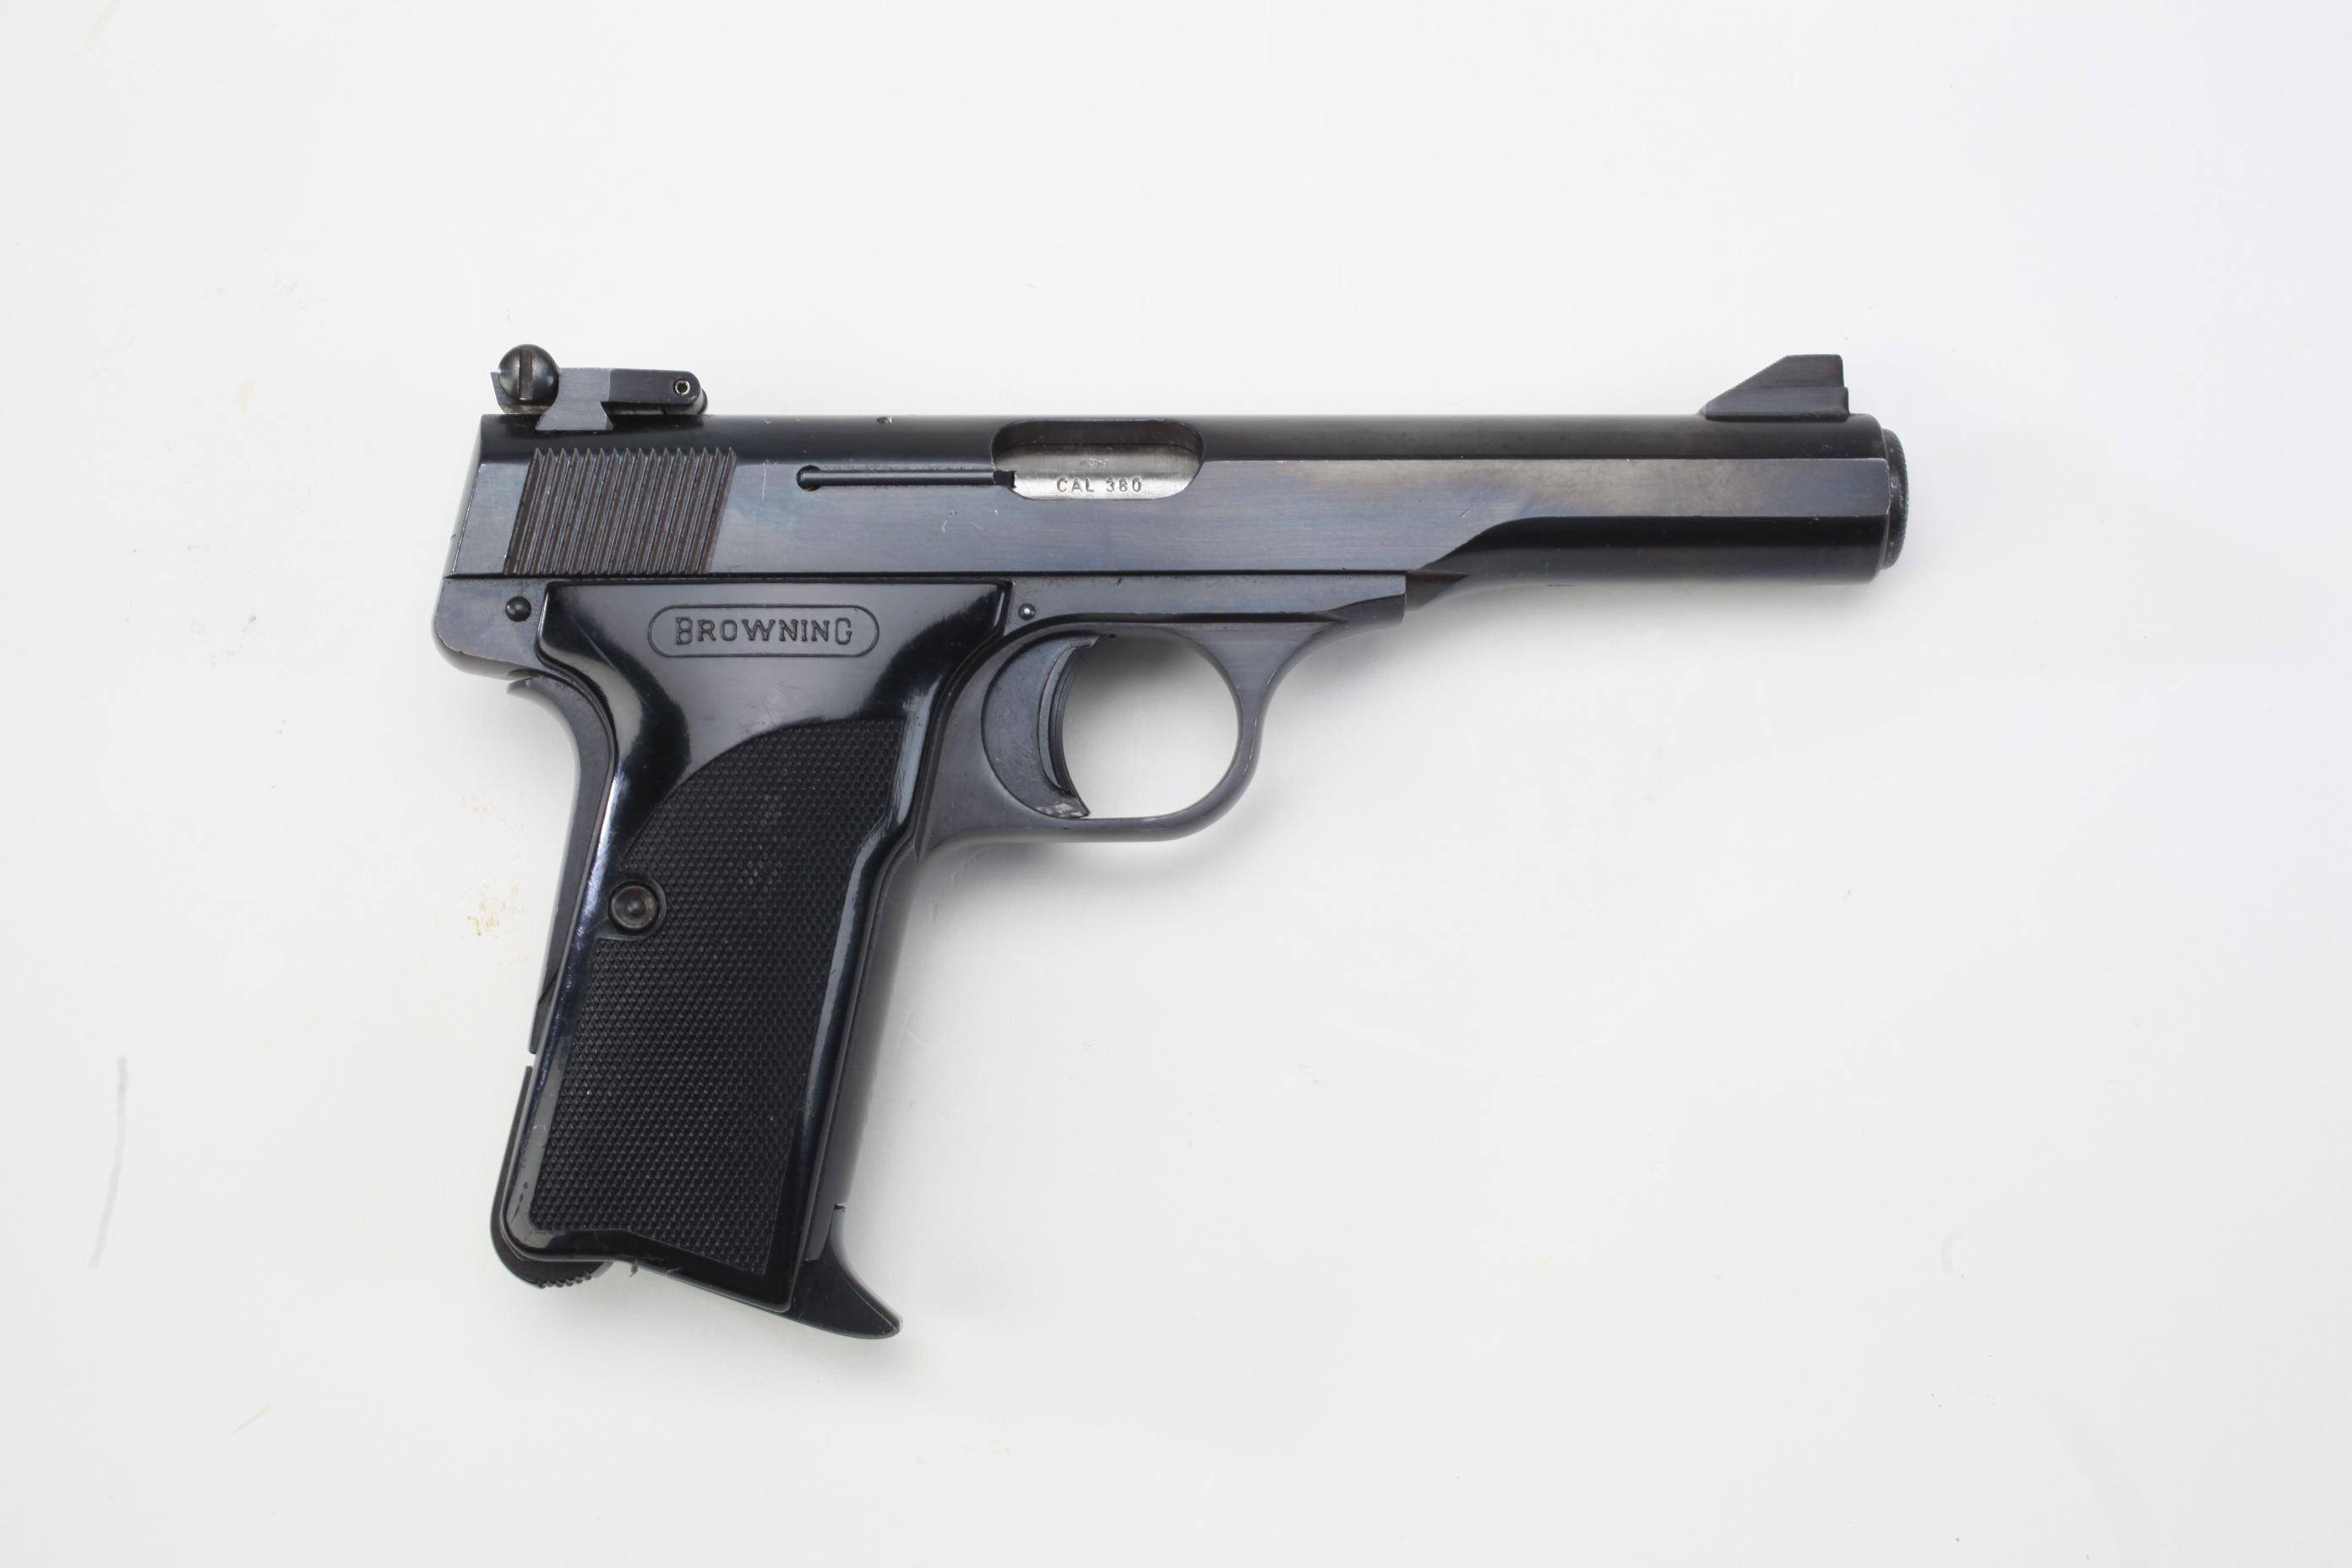 Browning Model 10 71 Semi Automatic Pistol